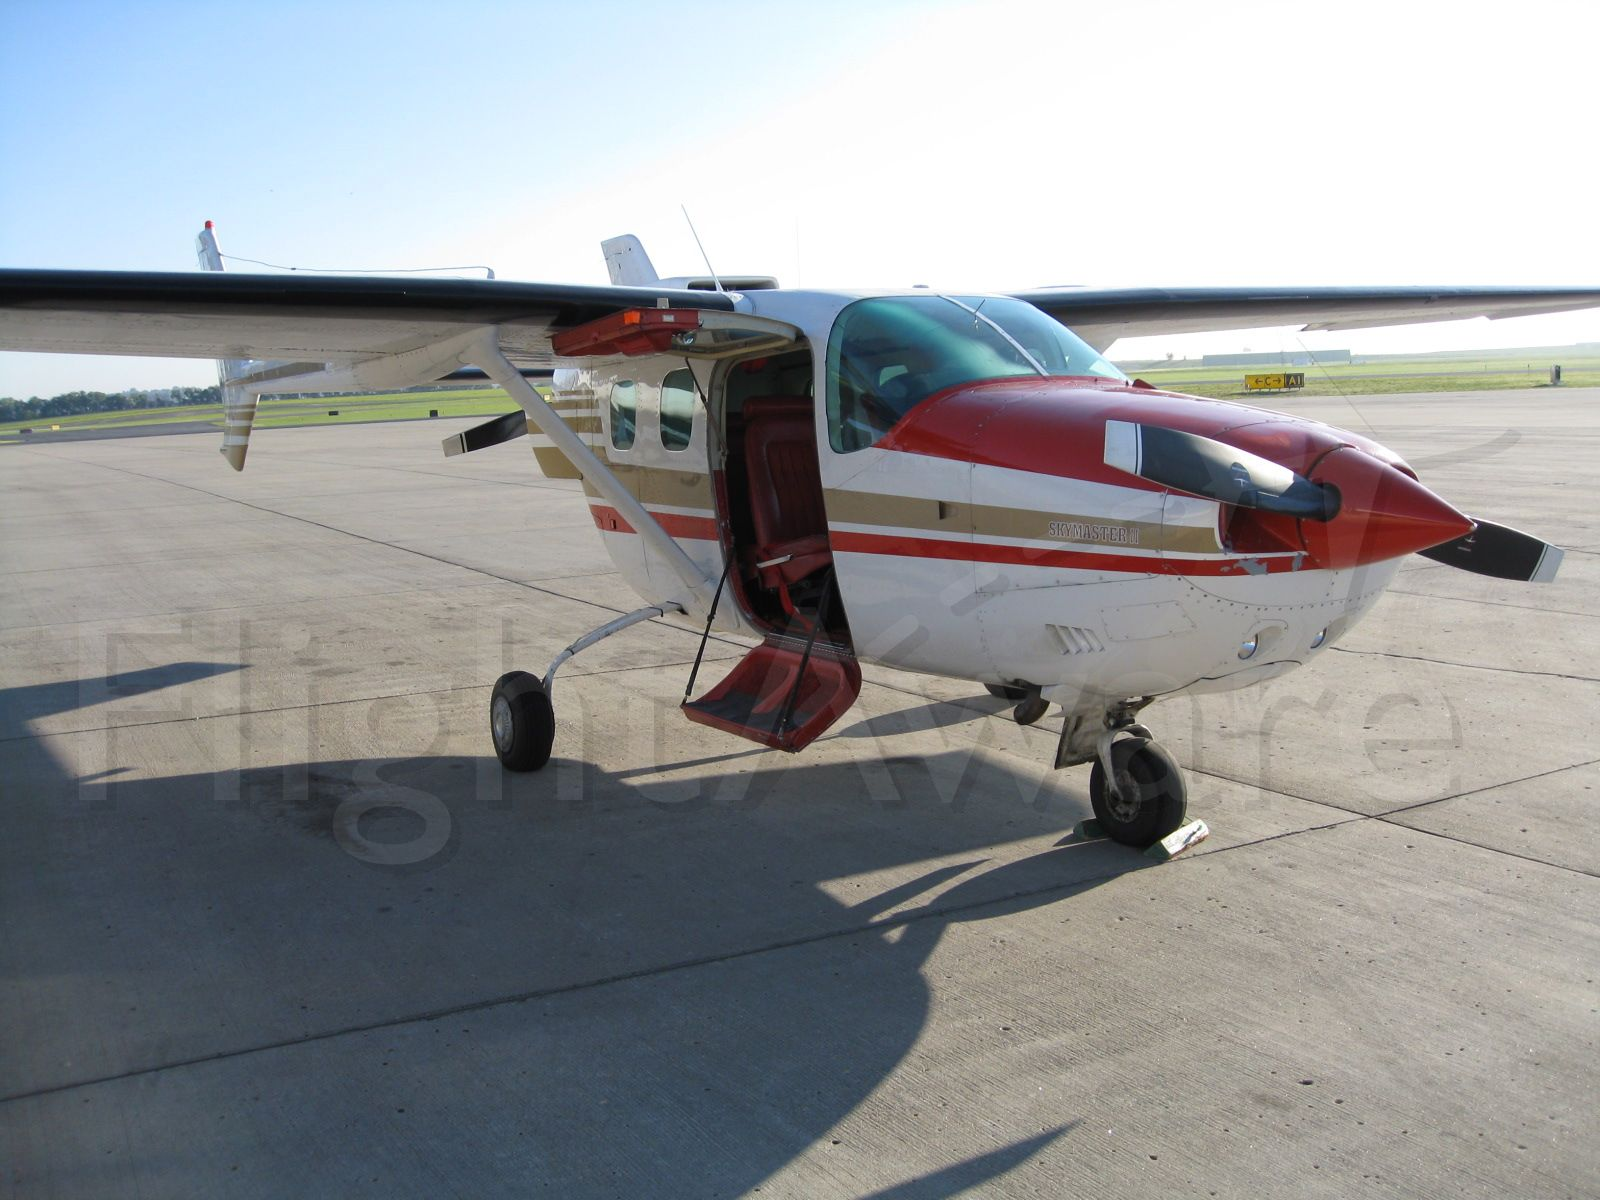 Cessna Super Skymaster (N333SS) - Owned by the North Dakota Aeronautics Commission, this Skymaster performs various tasks.  From airport inspections, aerial photography, and passenger transport, this aircraft is ready for anything, except icing conditions!